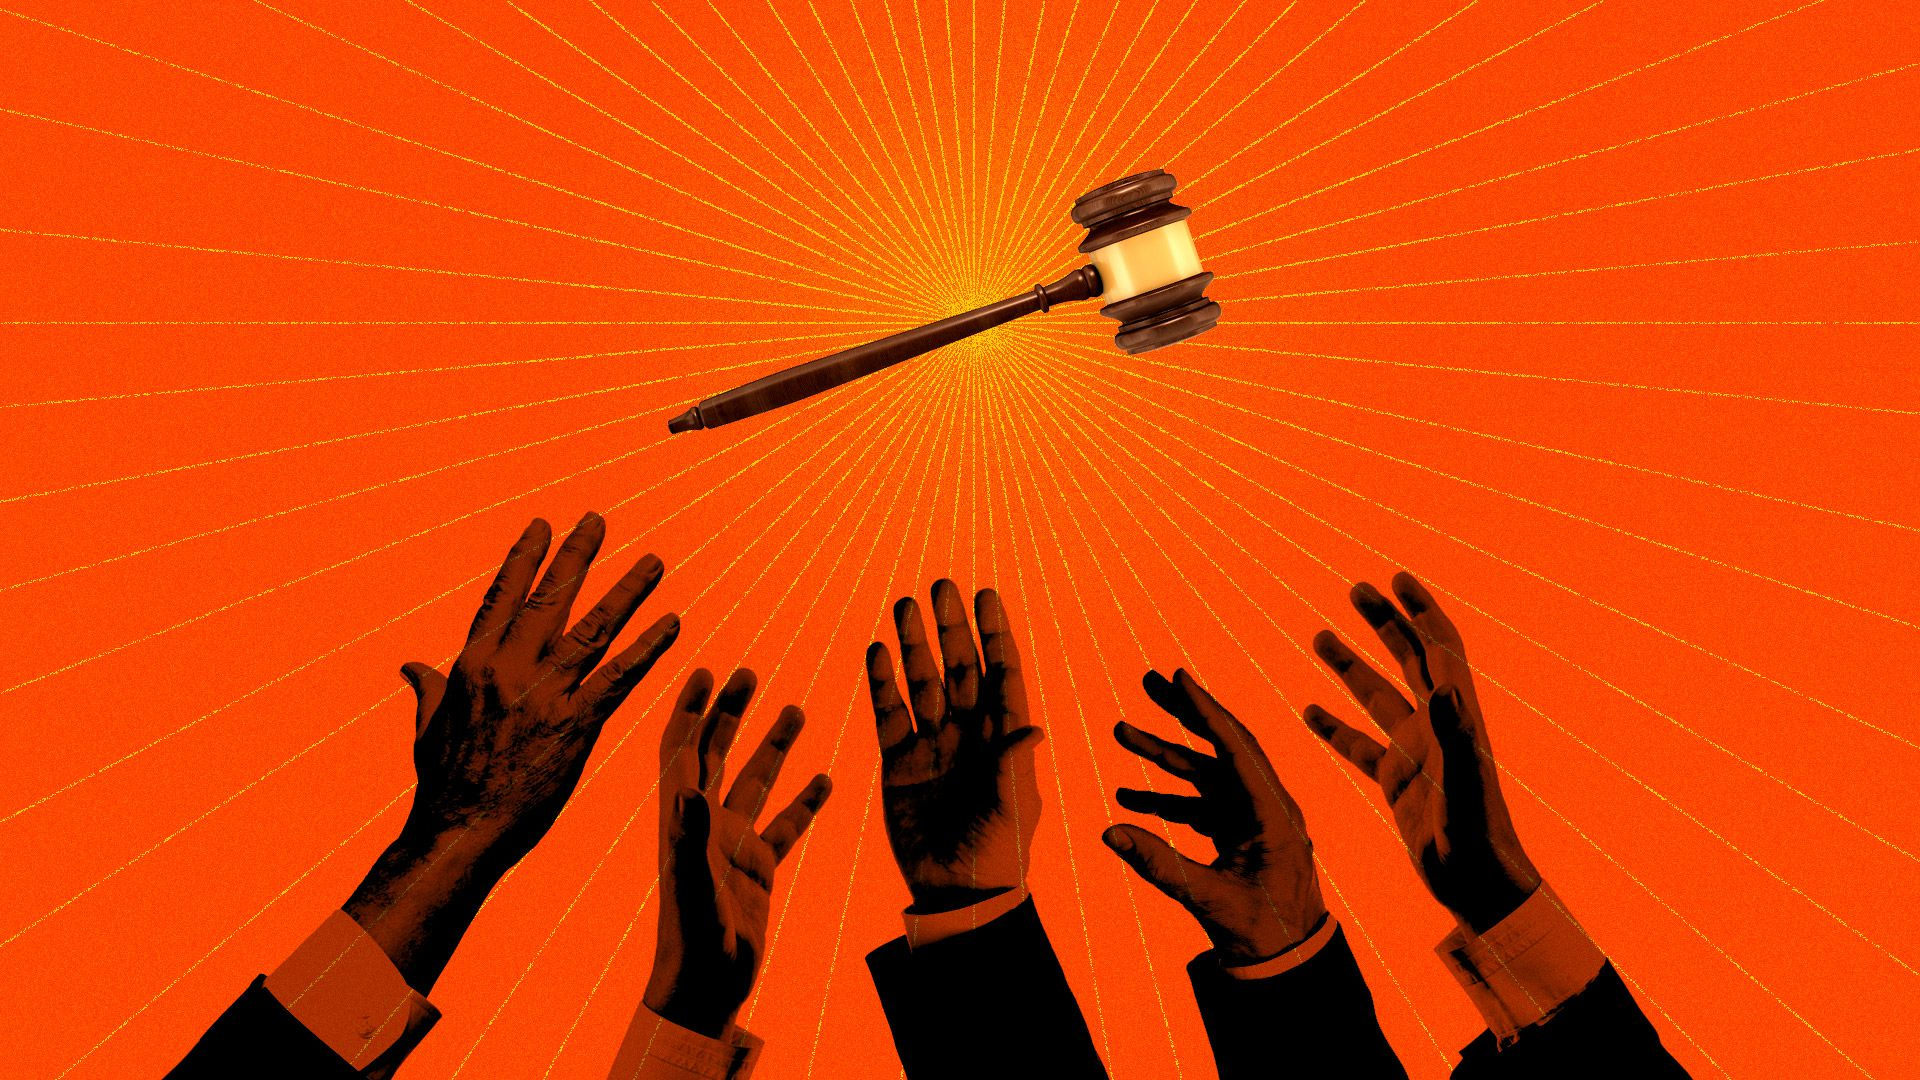 A crowd of hands reaching for the speaker's gavel